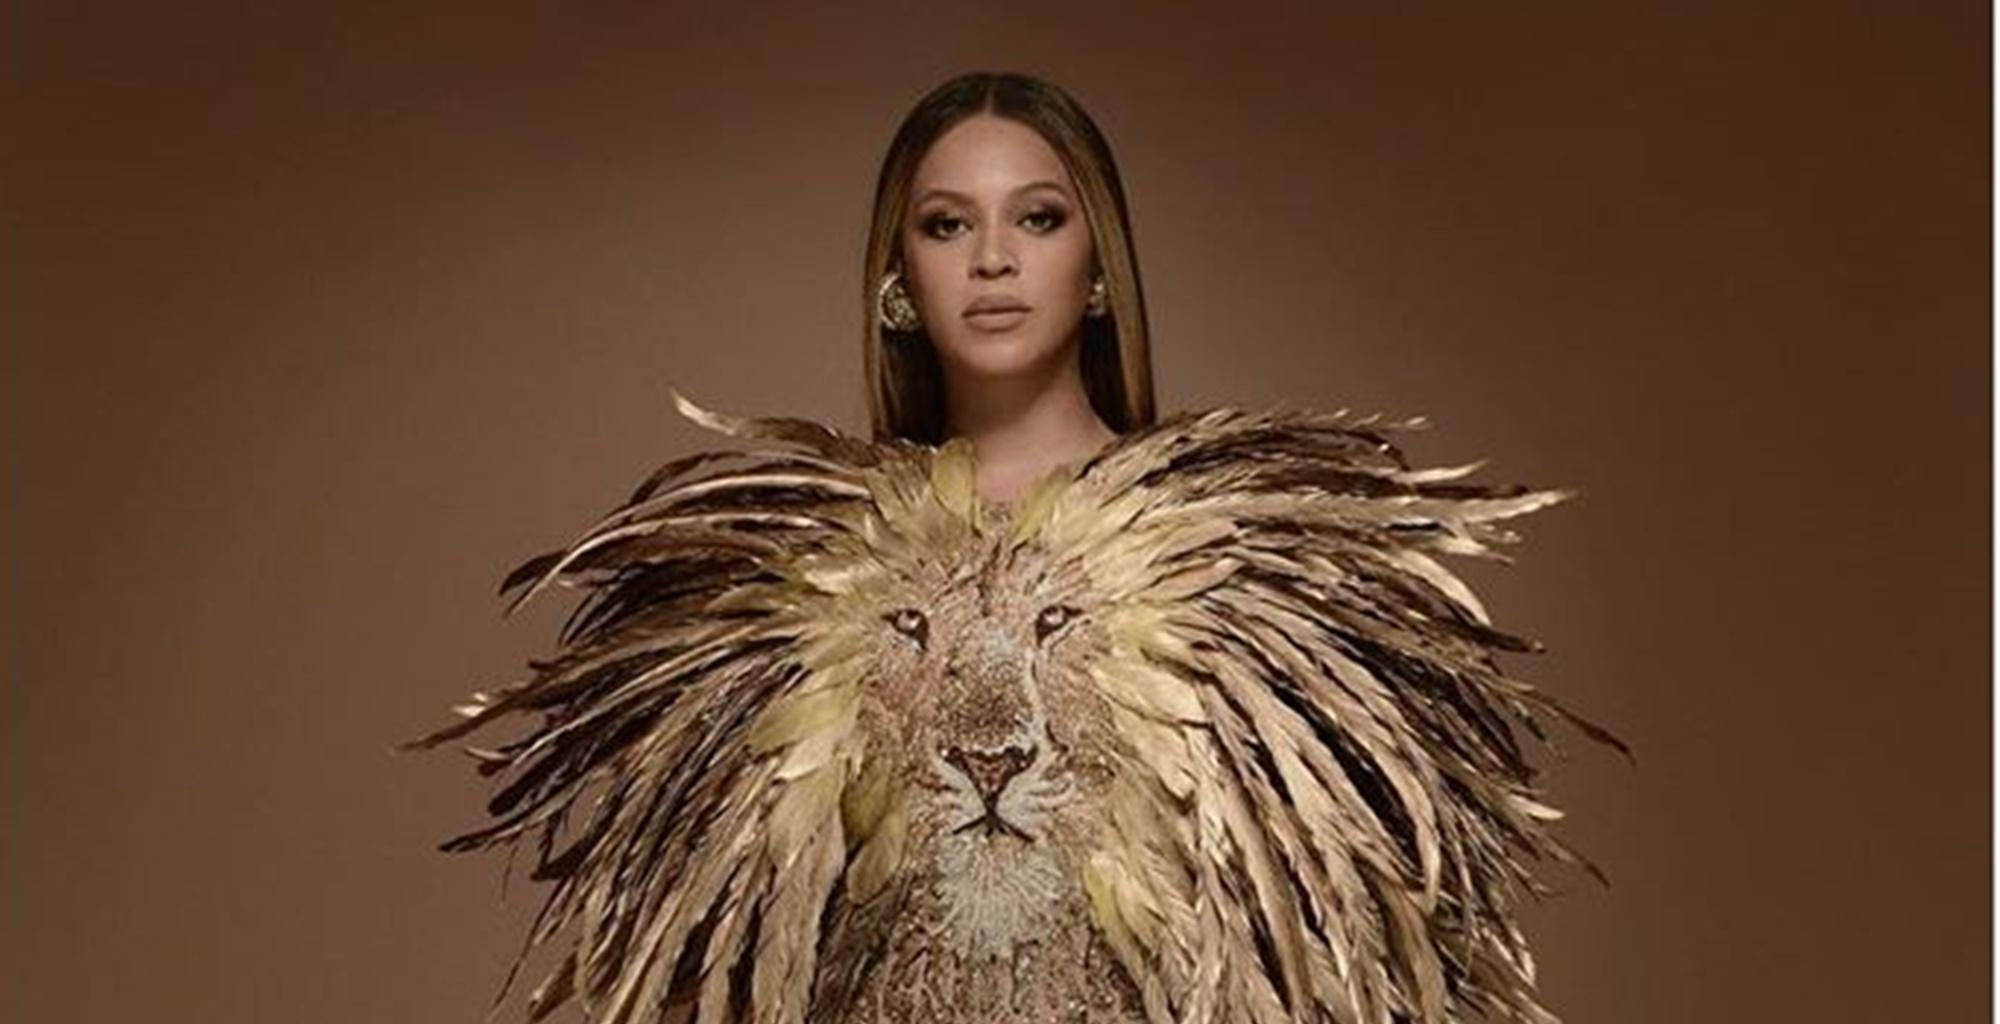 Blue Ivy Carter Looks Like She Is Coming For Beyonce's Throne In New Pictures Posted By Tina